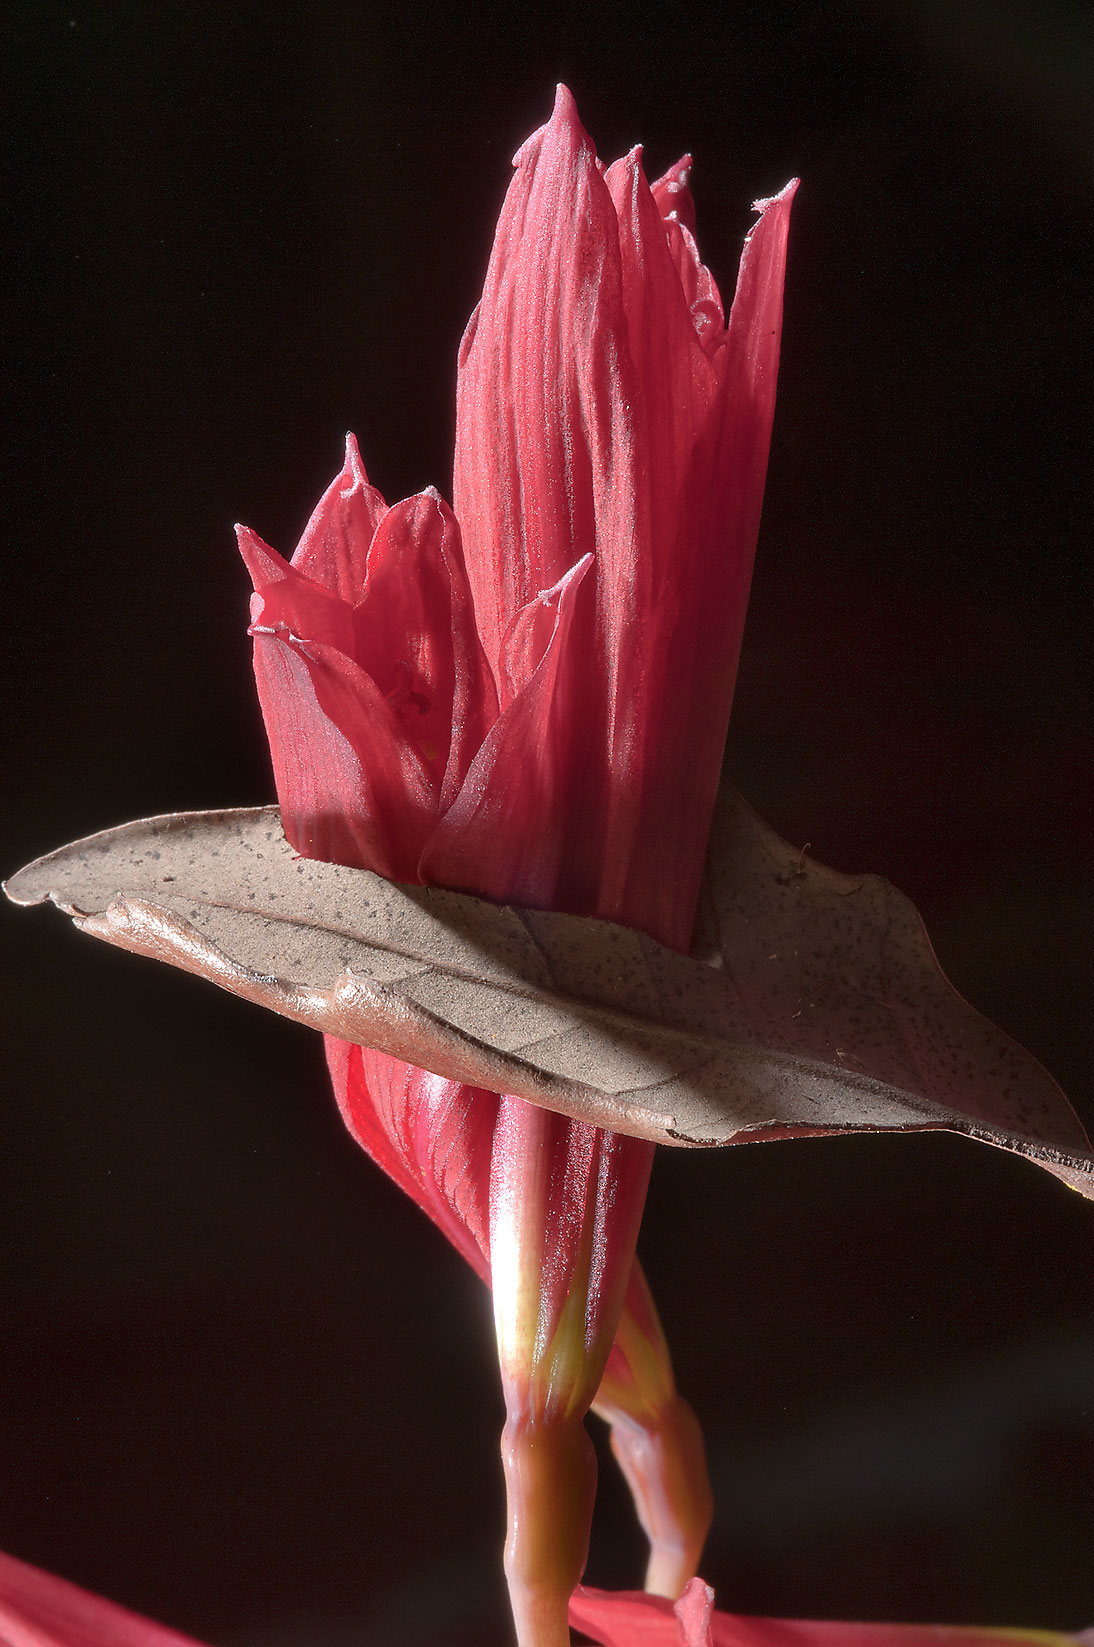 Oxblood lily (Rhodophiala bifida) grown through a...M University. College Station, Texas